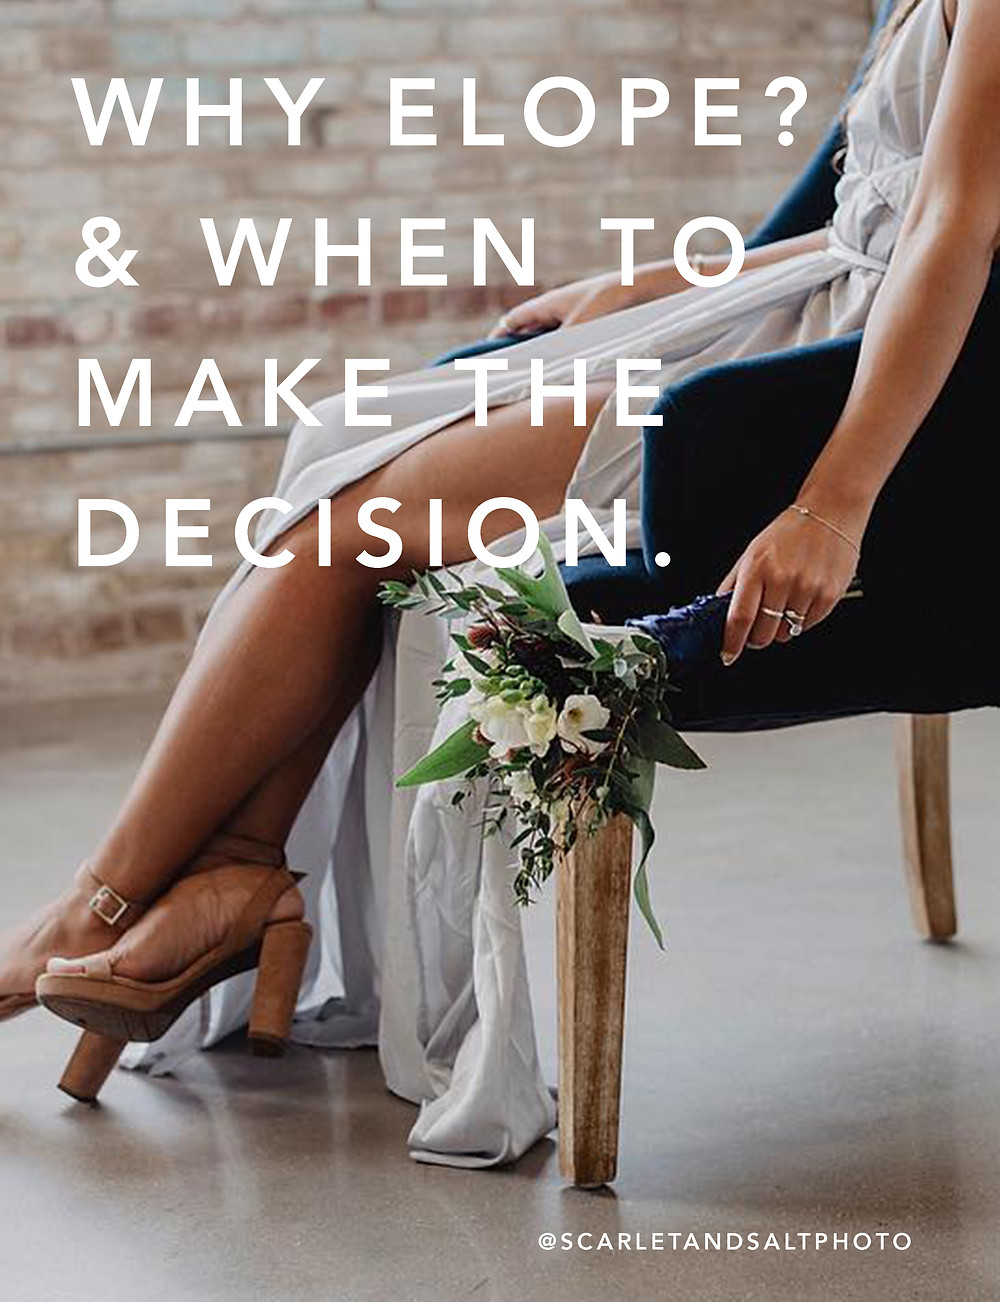 Why Elope? And when to make the decision.